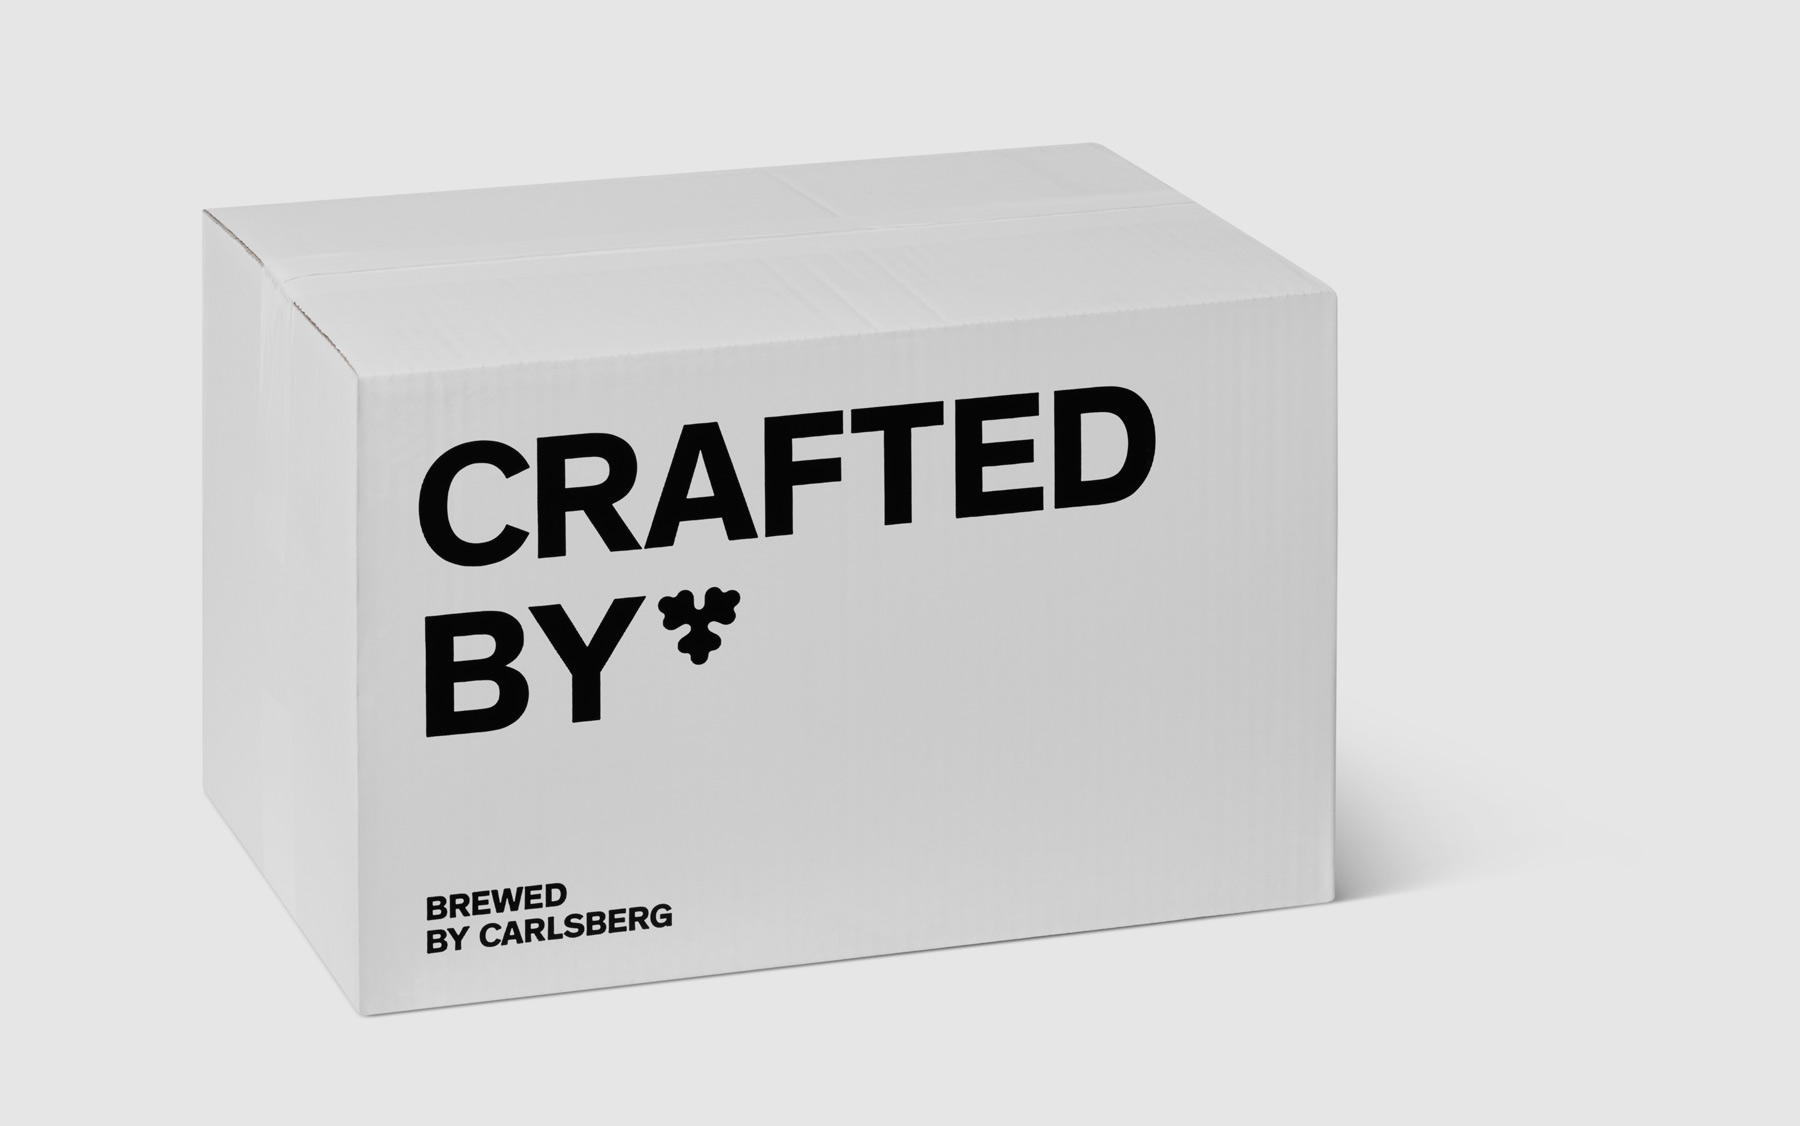 Crafted By